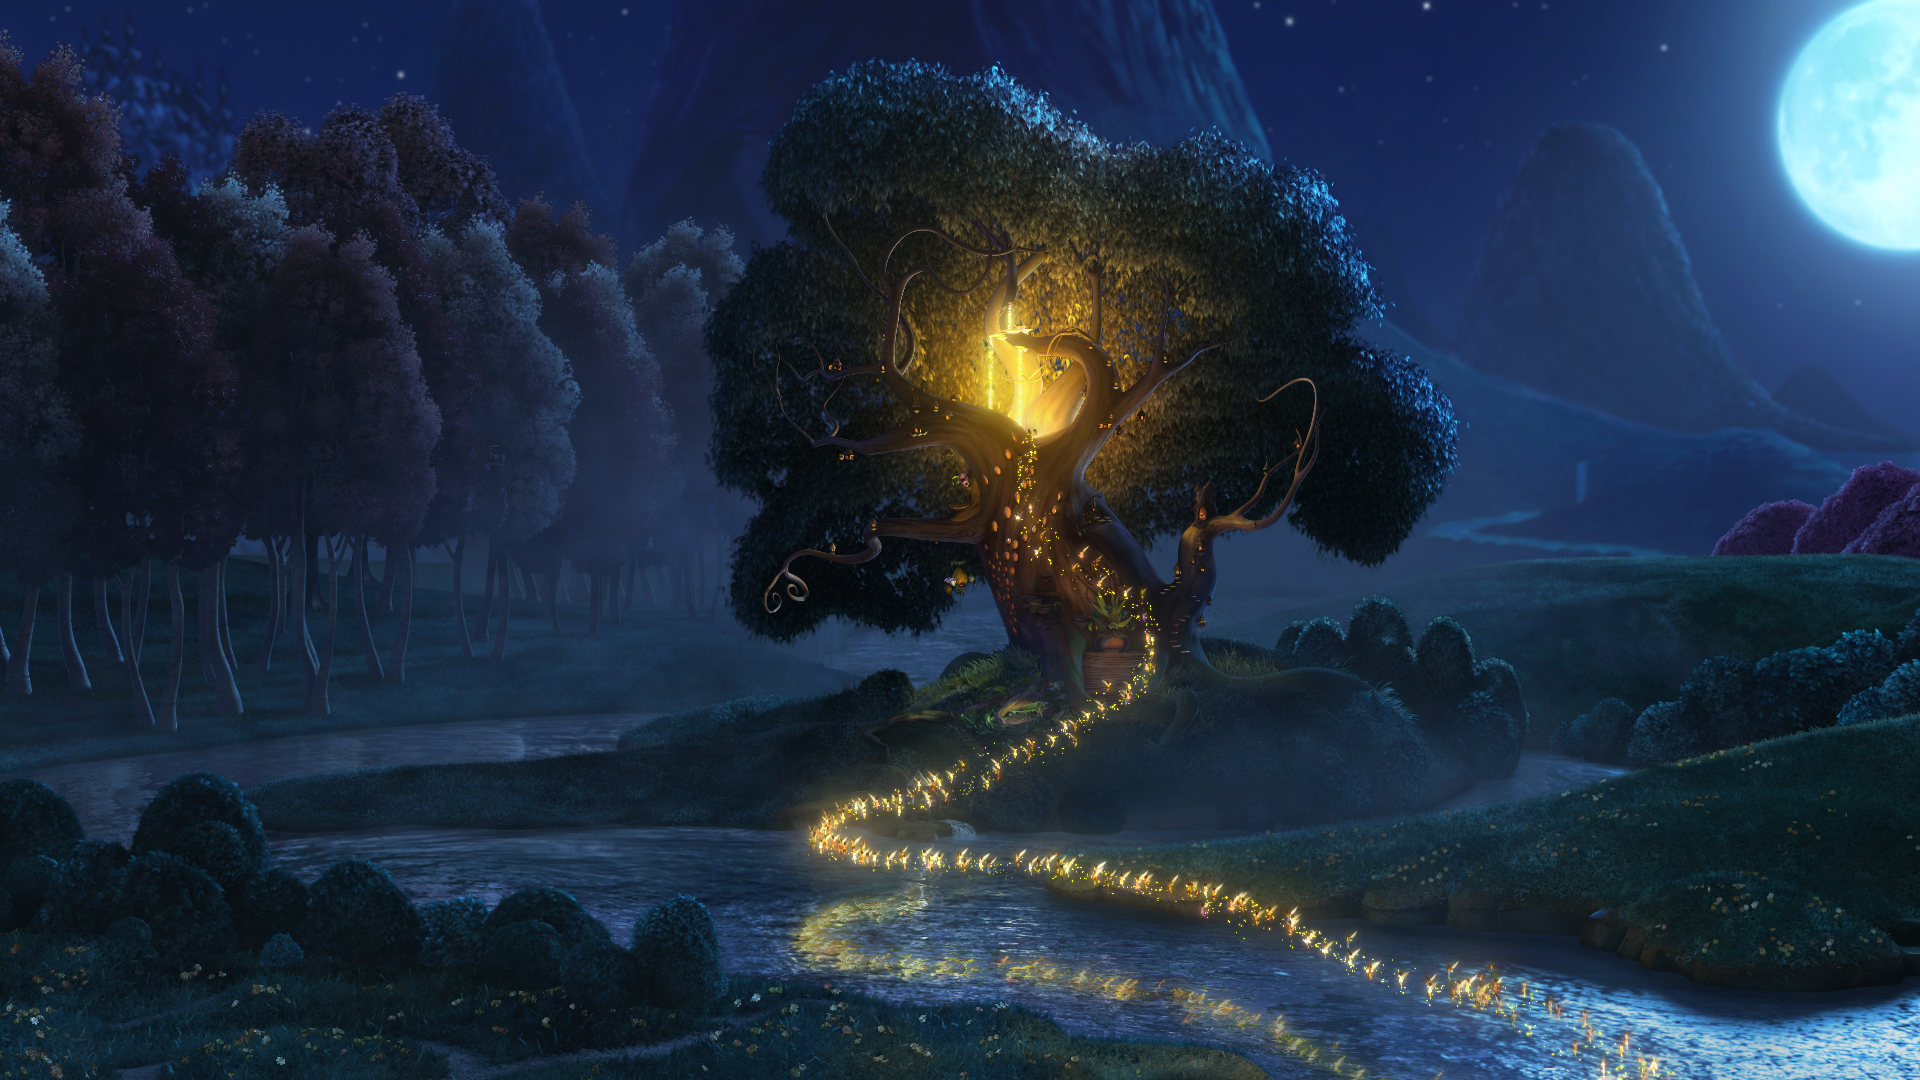 image pixie tree tinker bell jpg rise of the brave tangled